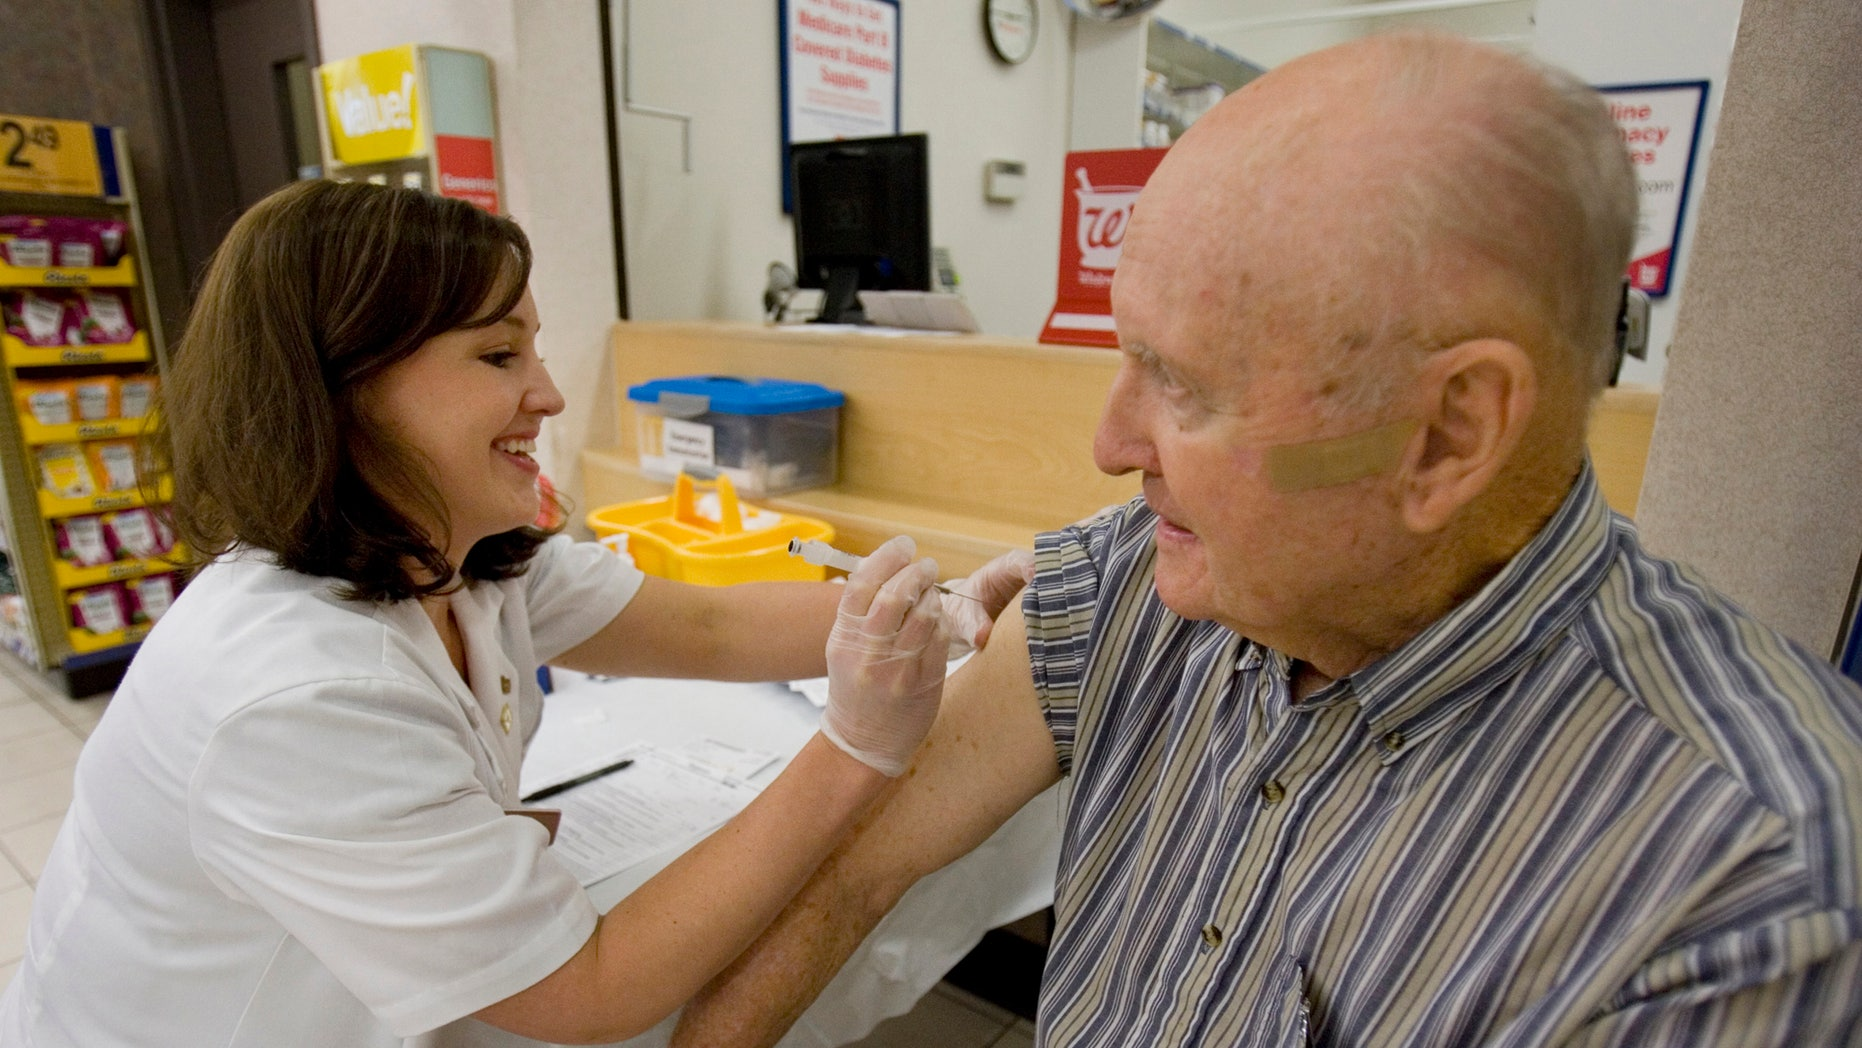 Maurice Brannon, 88 of Columbia, S.C. get his seasonal flu shot from Walgreen's pharmacy manager, Whitney Workman Tuesday, Sept. 1, 2009, in Columbia, S.C.